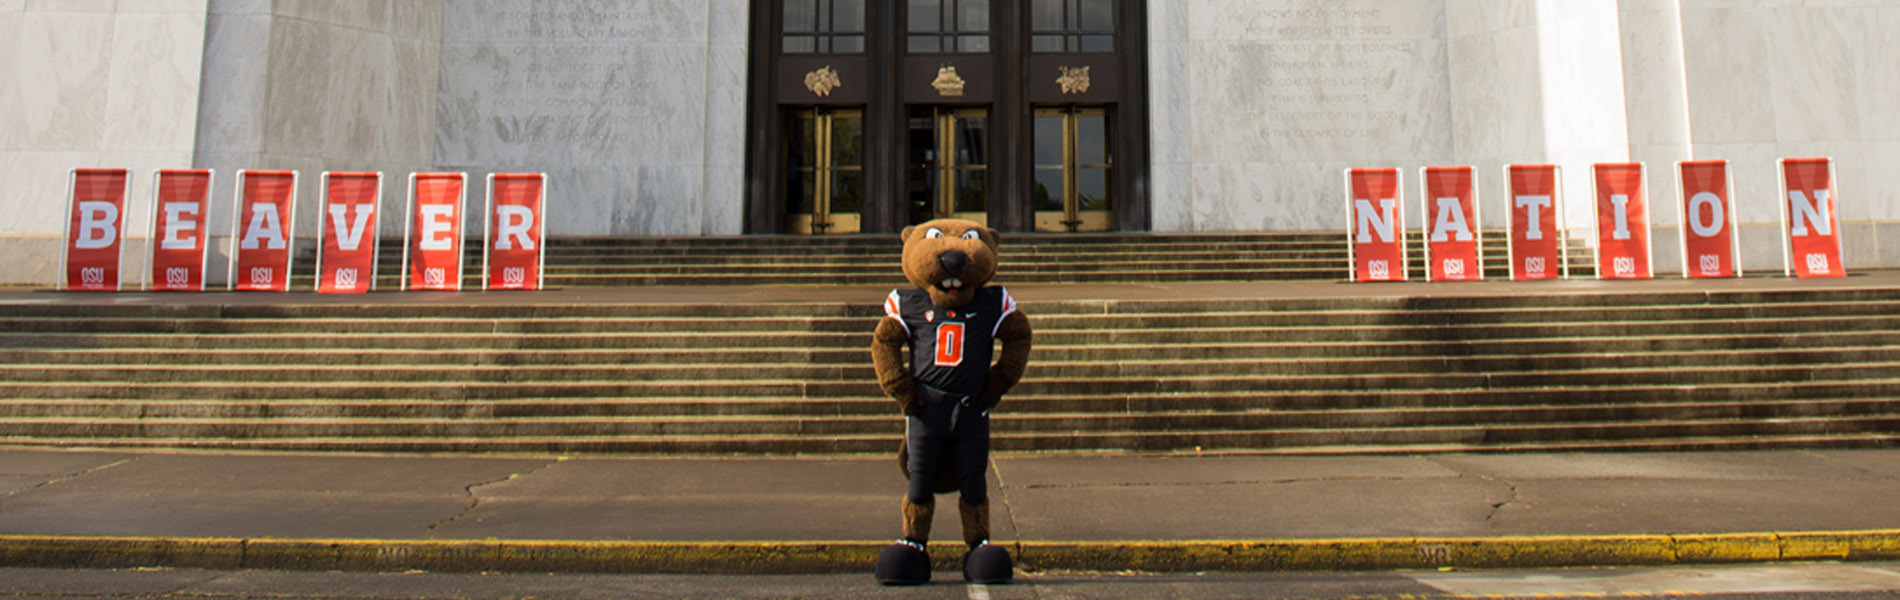 Benny the beaver standing on the Capitol Steps